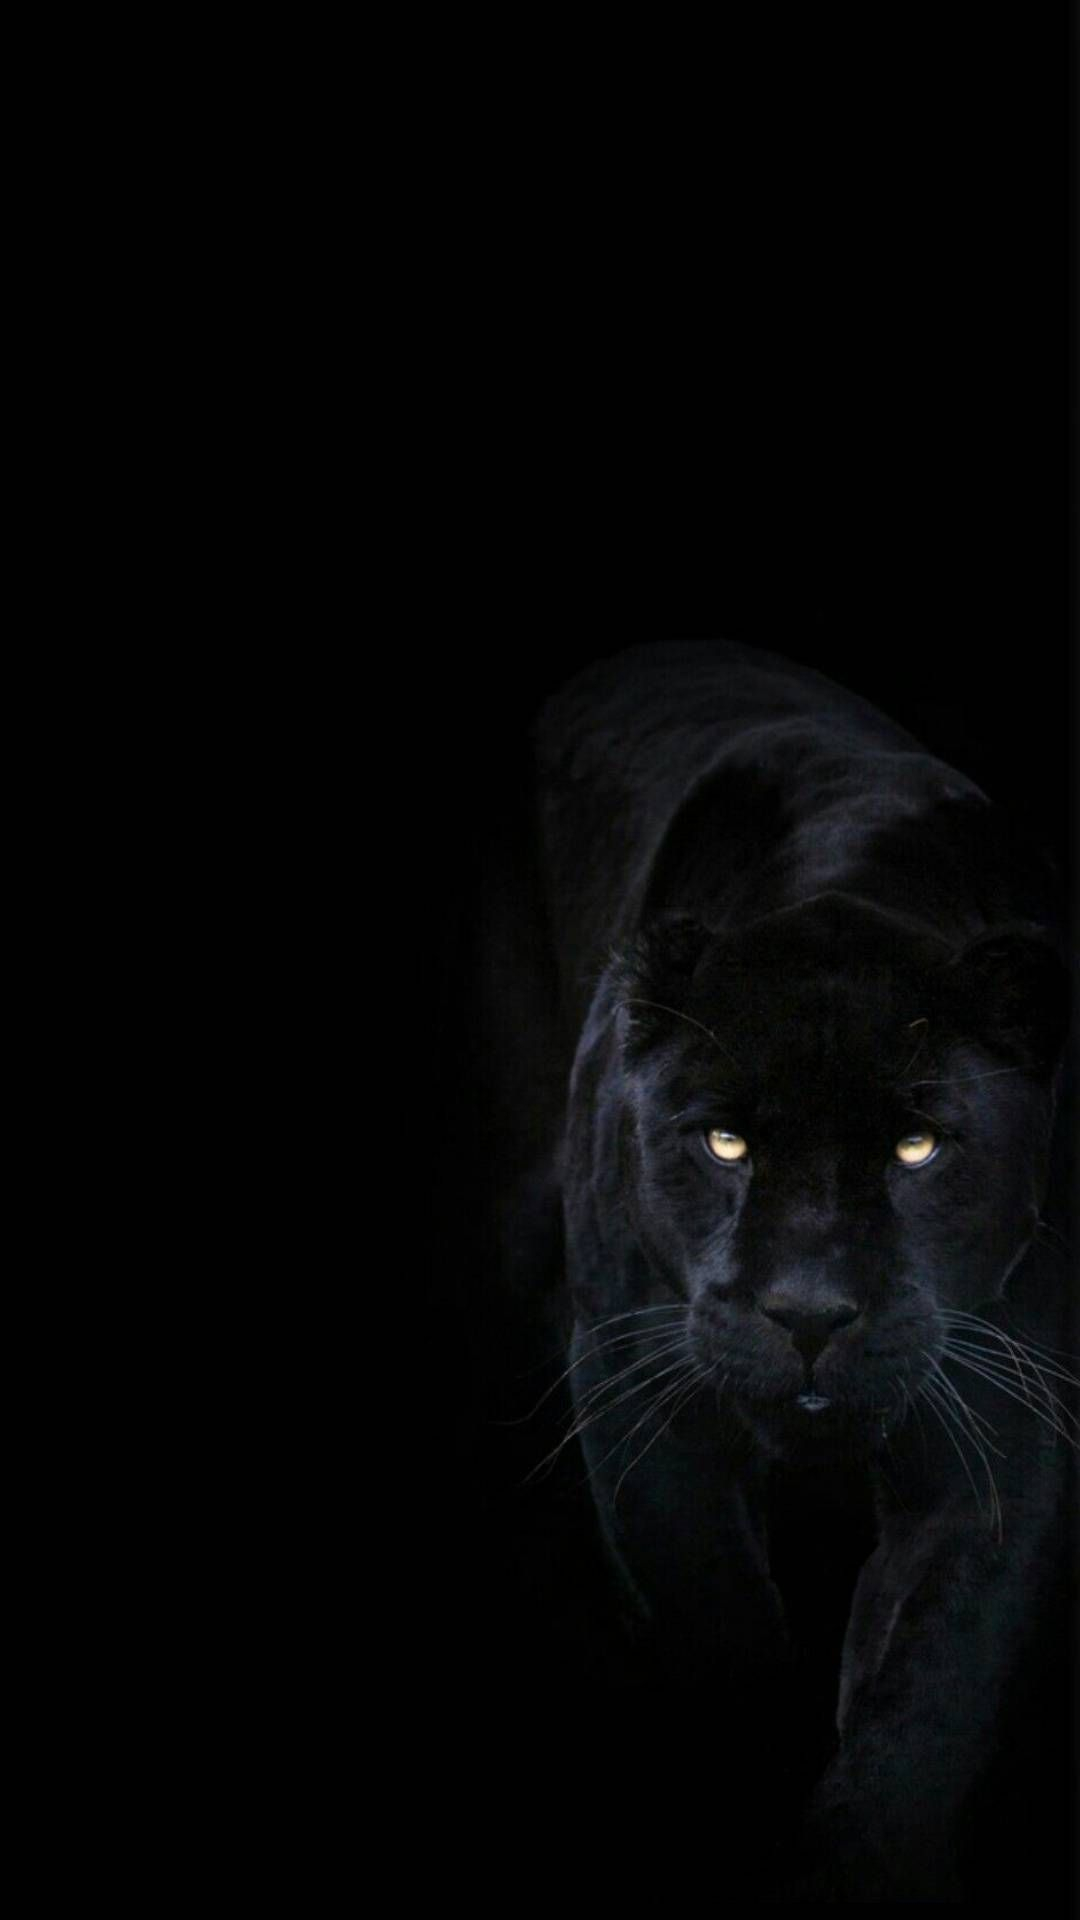 Dark IPhone Backgrounds – Cool Backgrounds